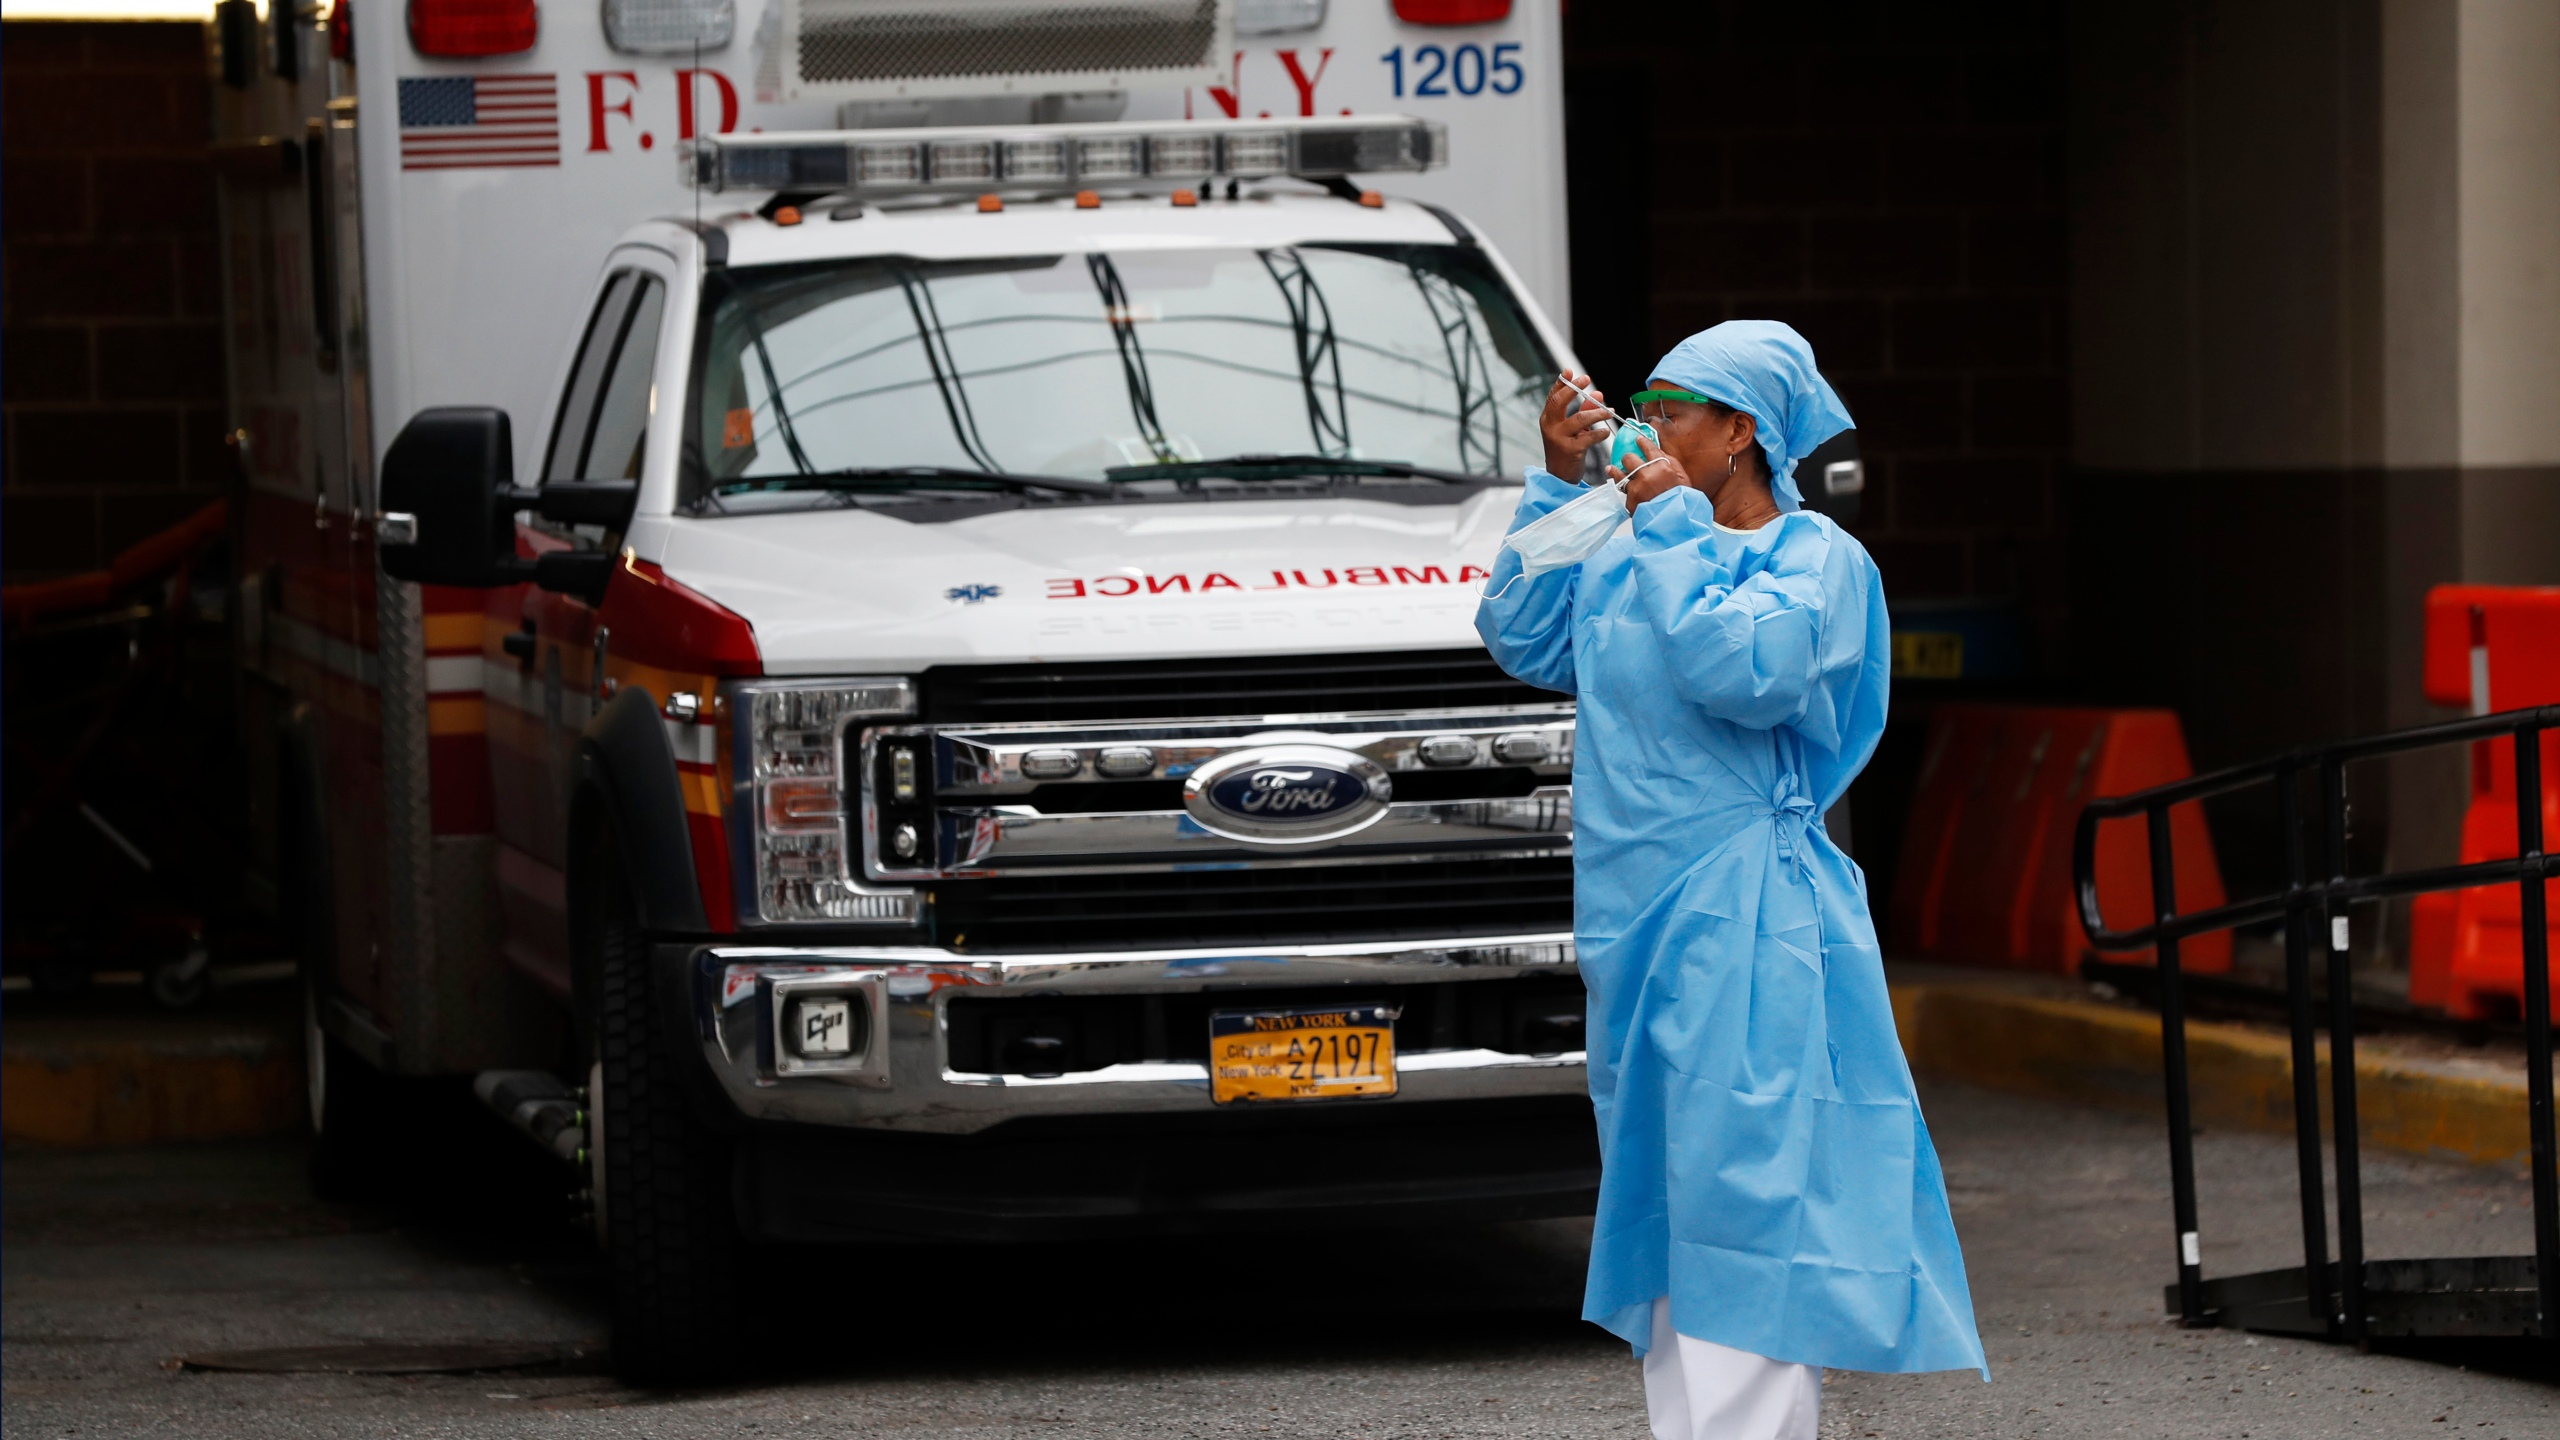 An emergency room nurse dons her face protectors after taking a break in a driveway for ambulances and emergency medical services vehicles outside Brooklyn Hospital Center's emergency room, in New York on Sunday. (AP Photo/Kathy Willens)